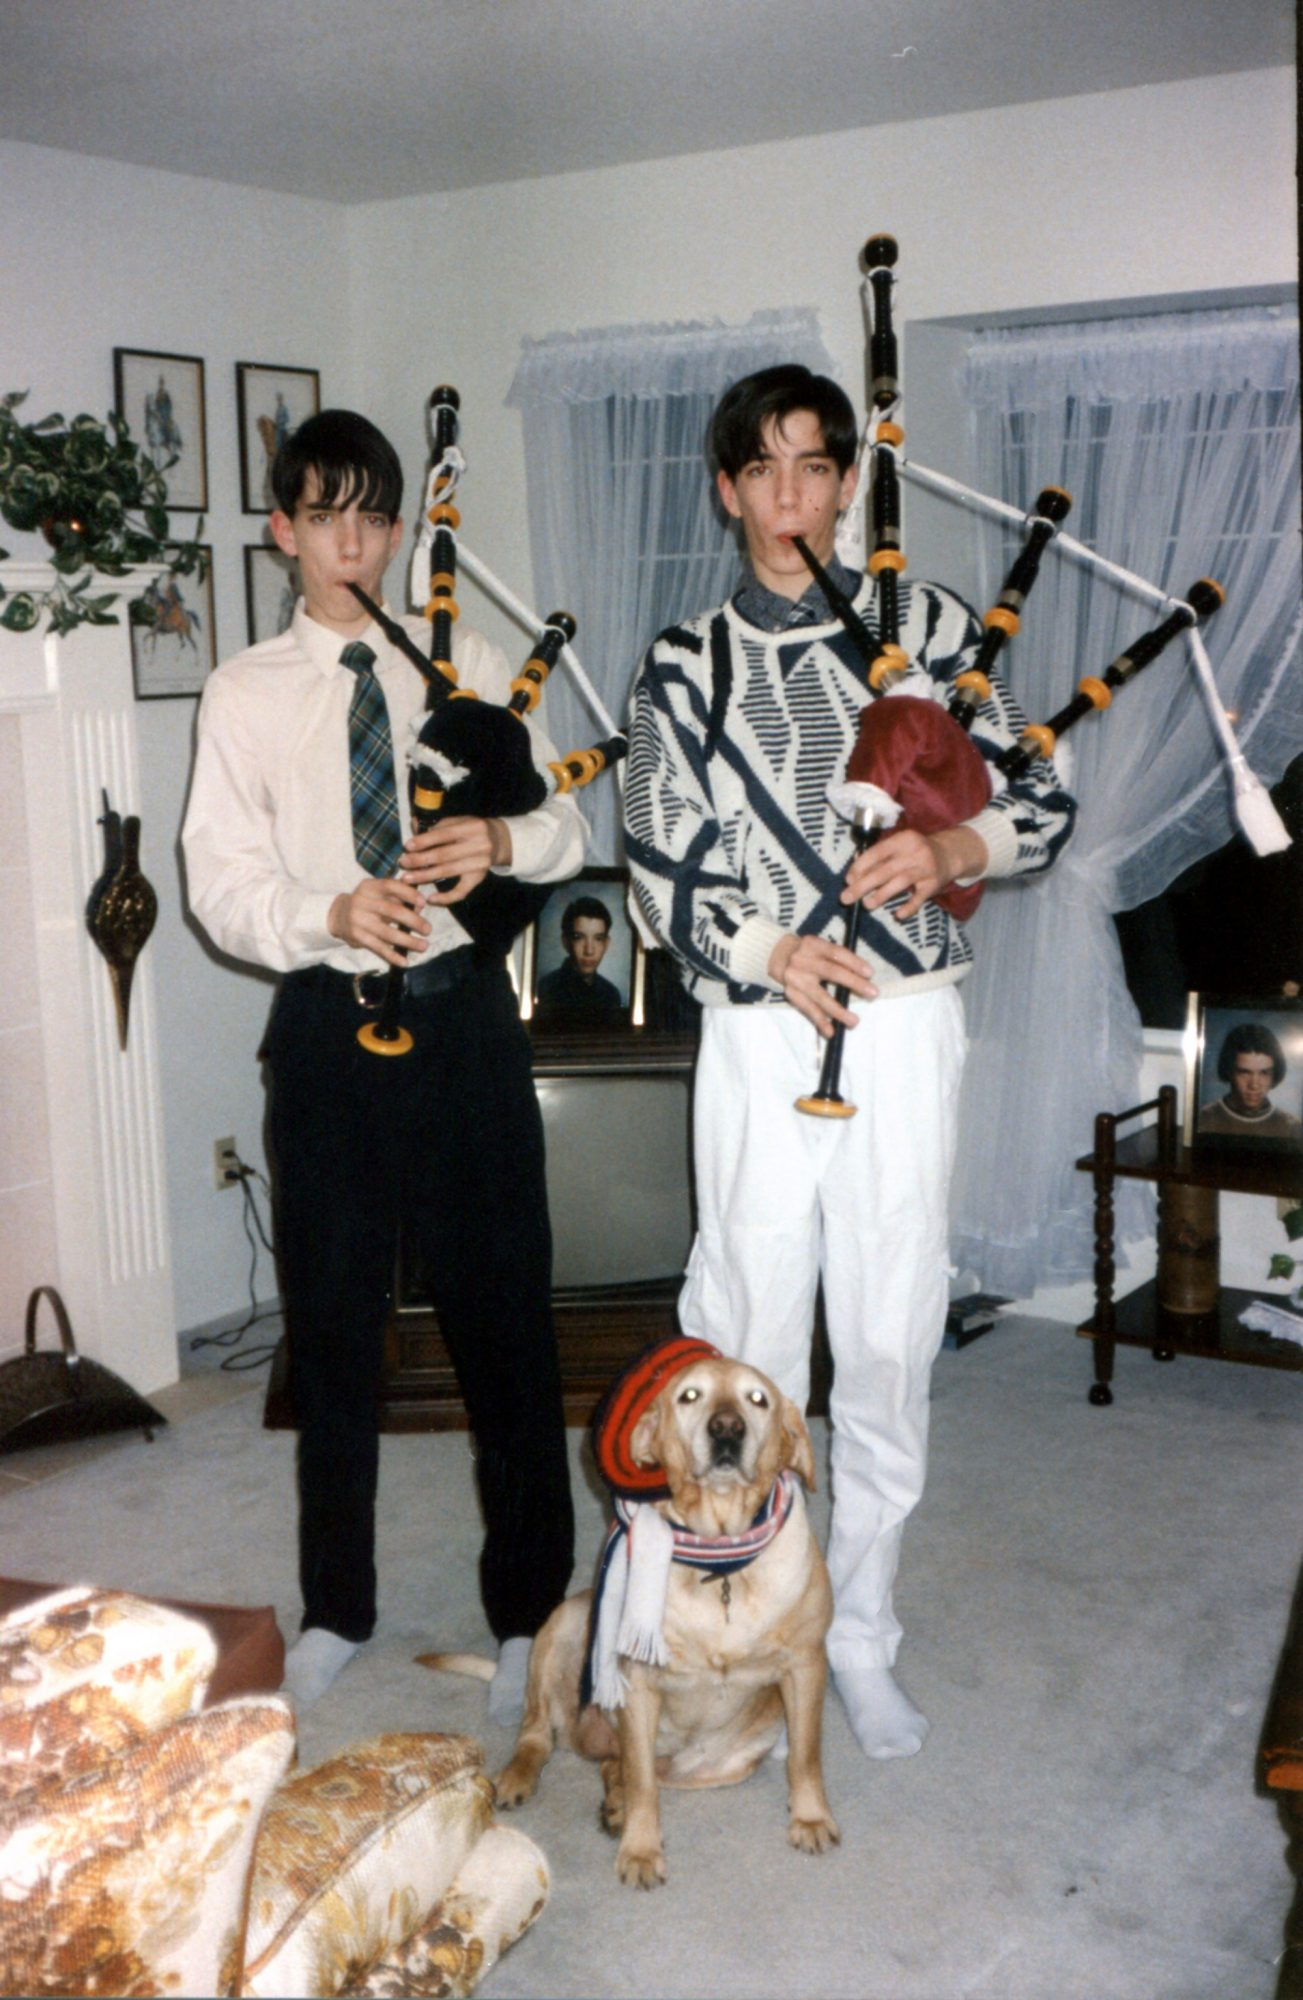 F:PHOTOReady RoomActionsInsert Request46922#Property Brothers1994  -  004.jpg